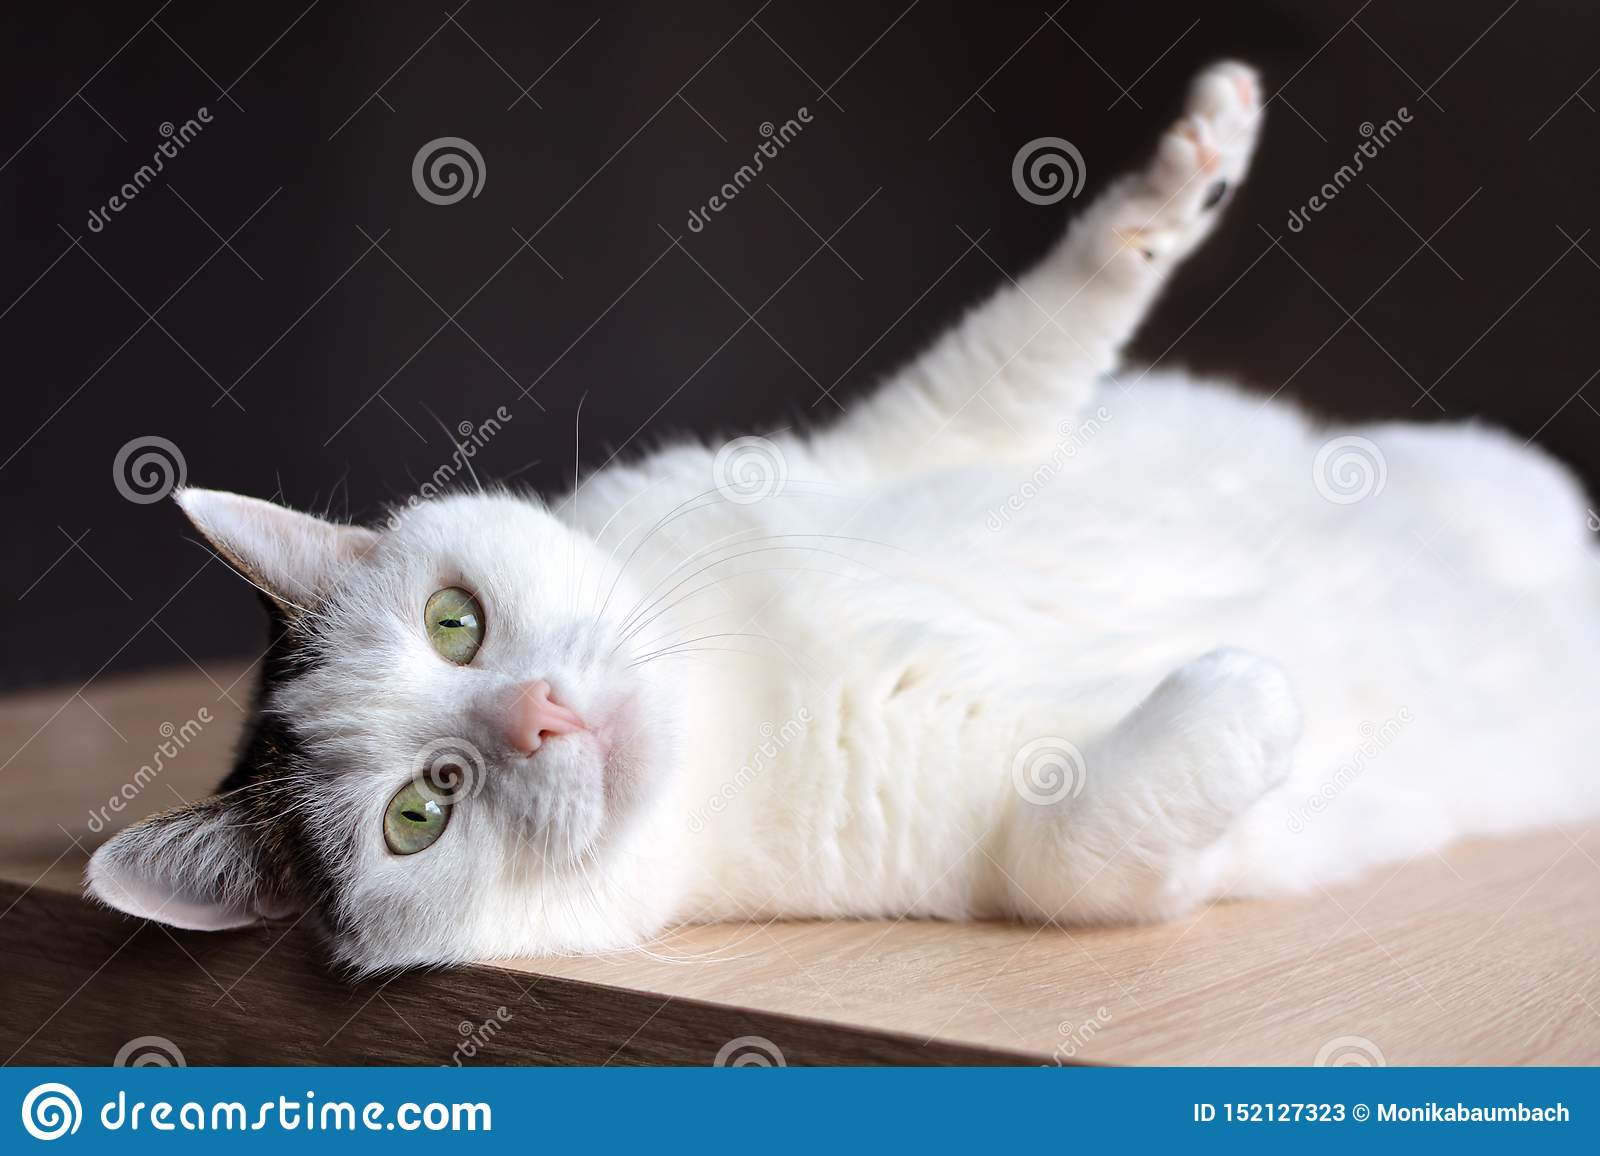 Tabby white cat with green eyes and pink nose lying on wooden floor on dark background